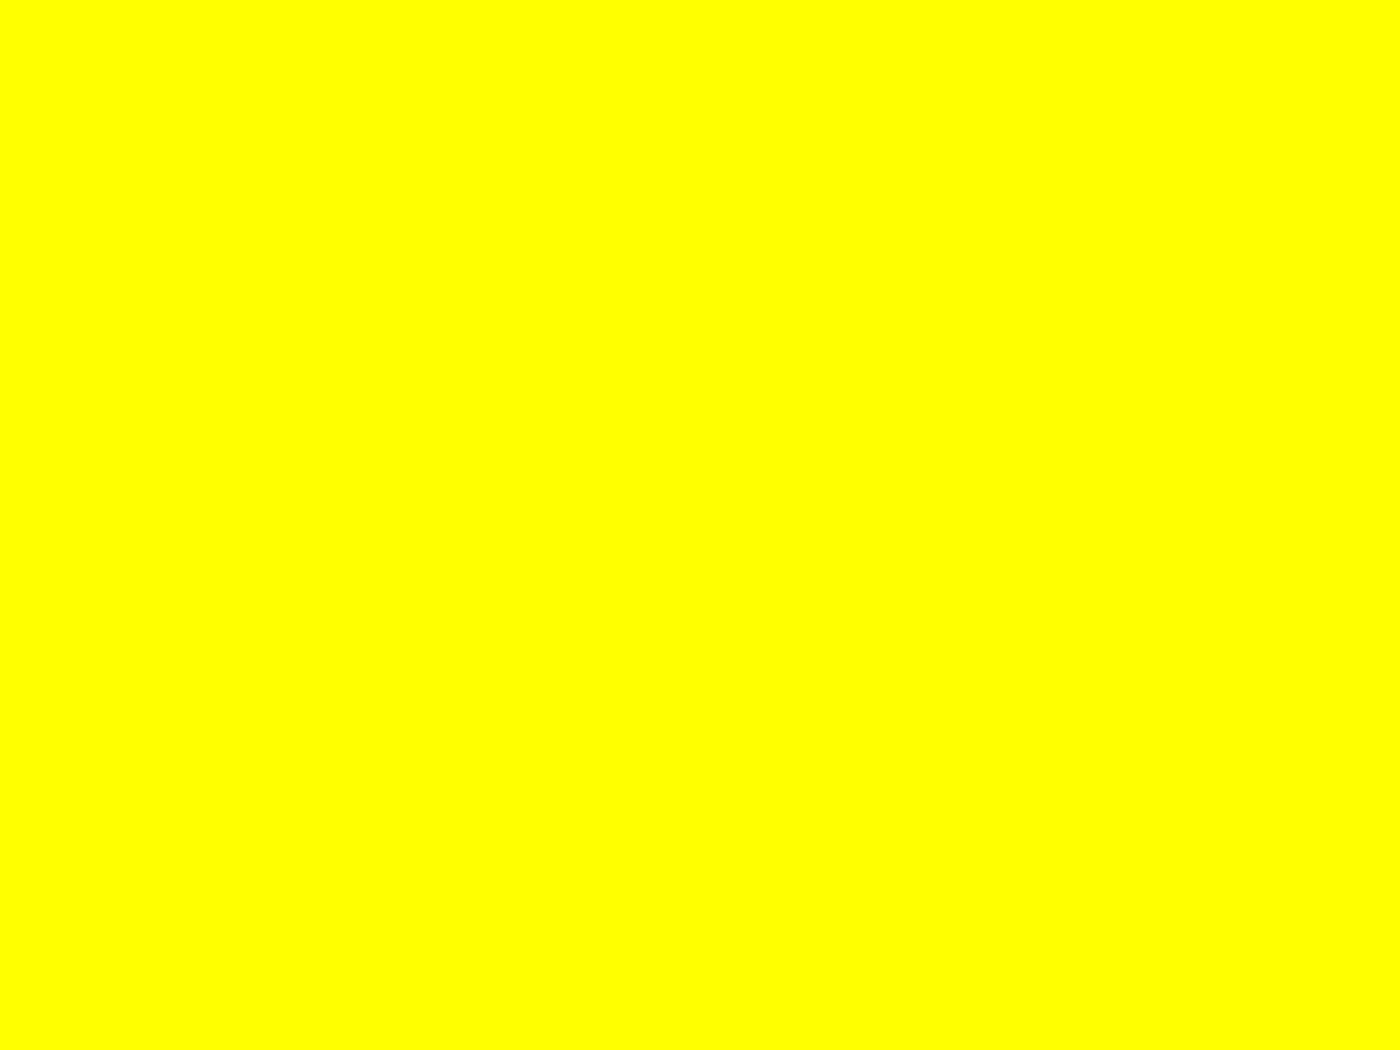 1400x1050 Yellow Solid Color Background